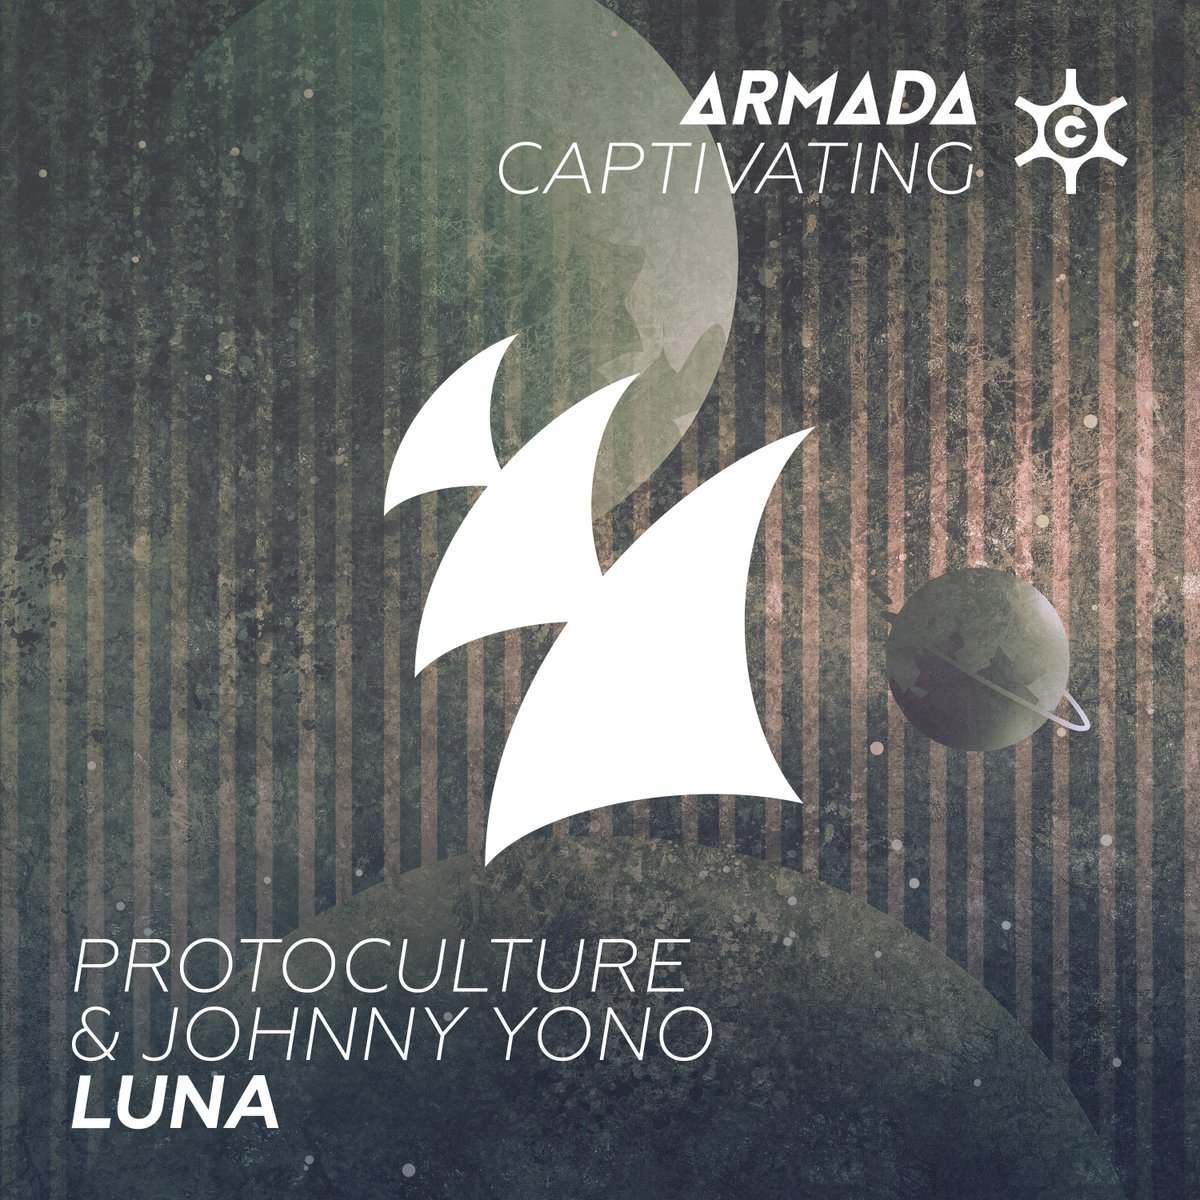 I've teamed up once again with @_protoculture to bring you our new collab OUT this Friday on @Armadacaptivate! #Luna https://t.co/fZwCp8bwpa